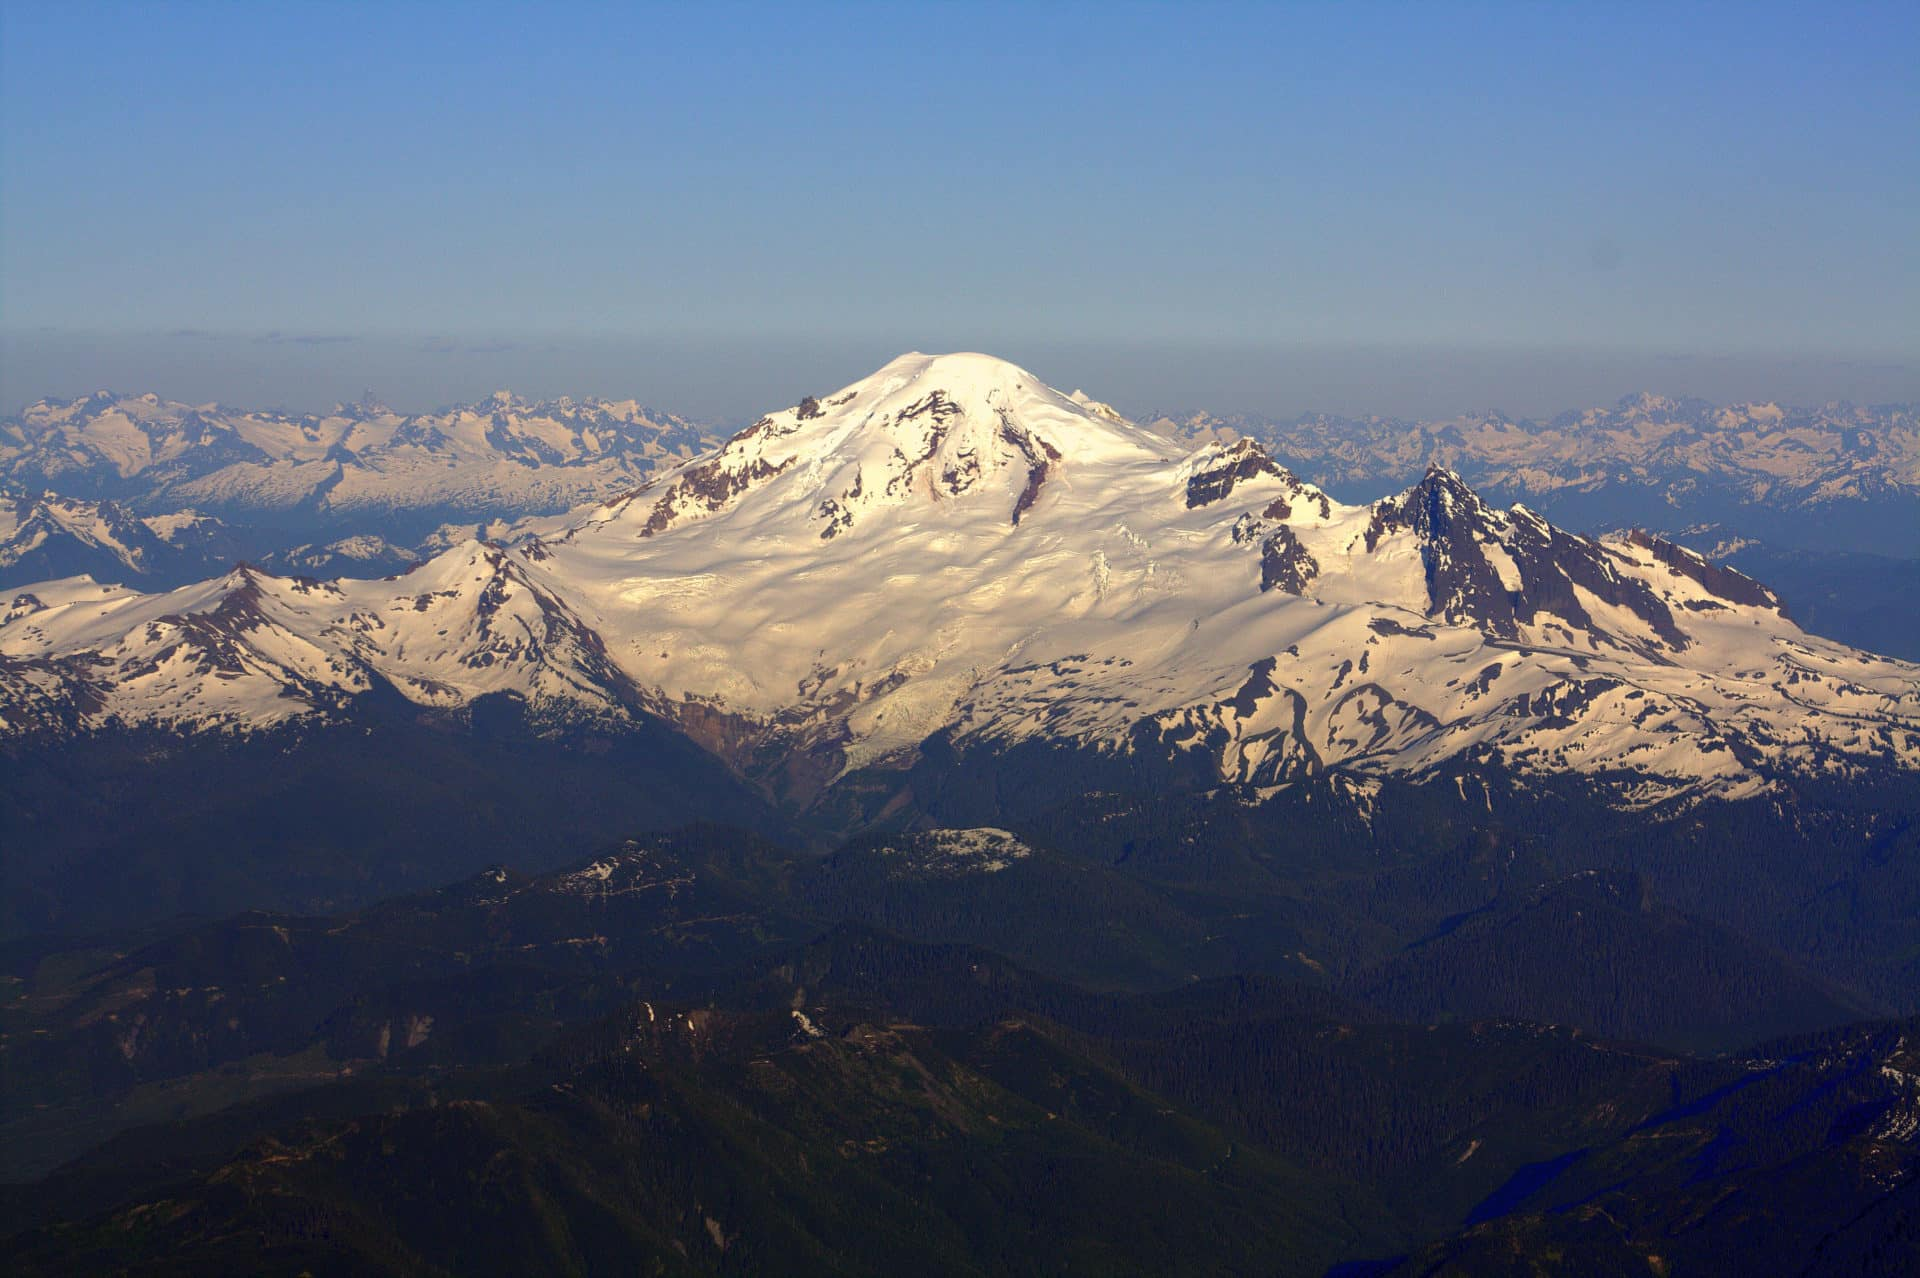 Backcountry skiing day trips on Mt. Baker